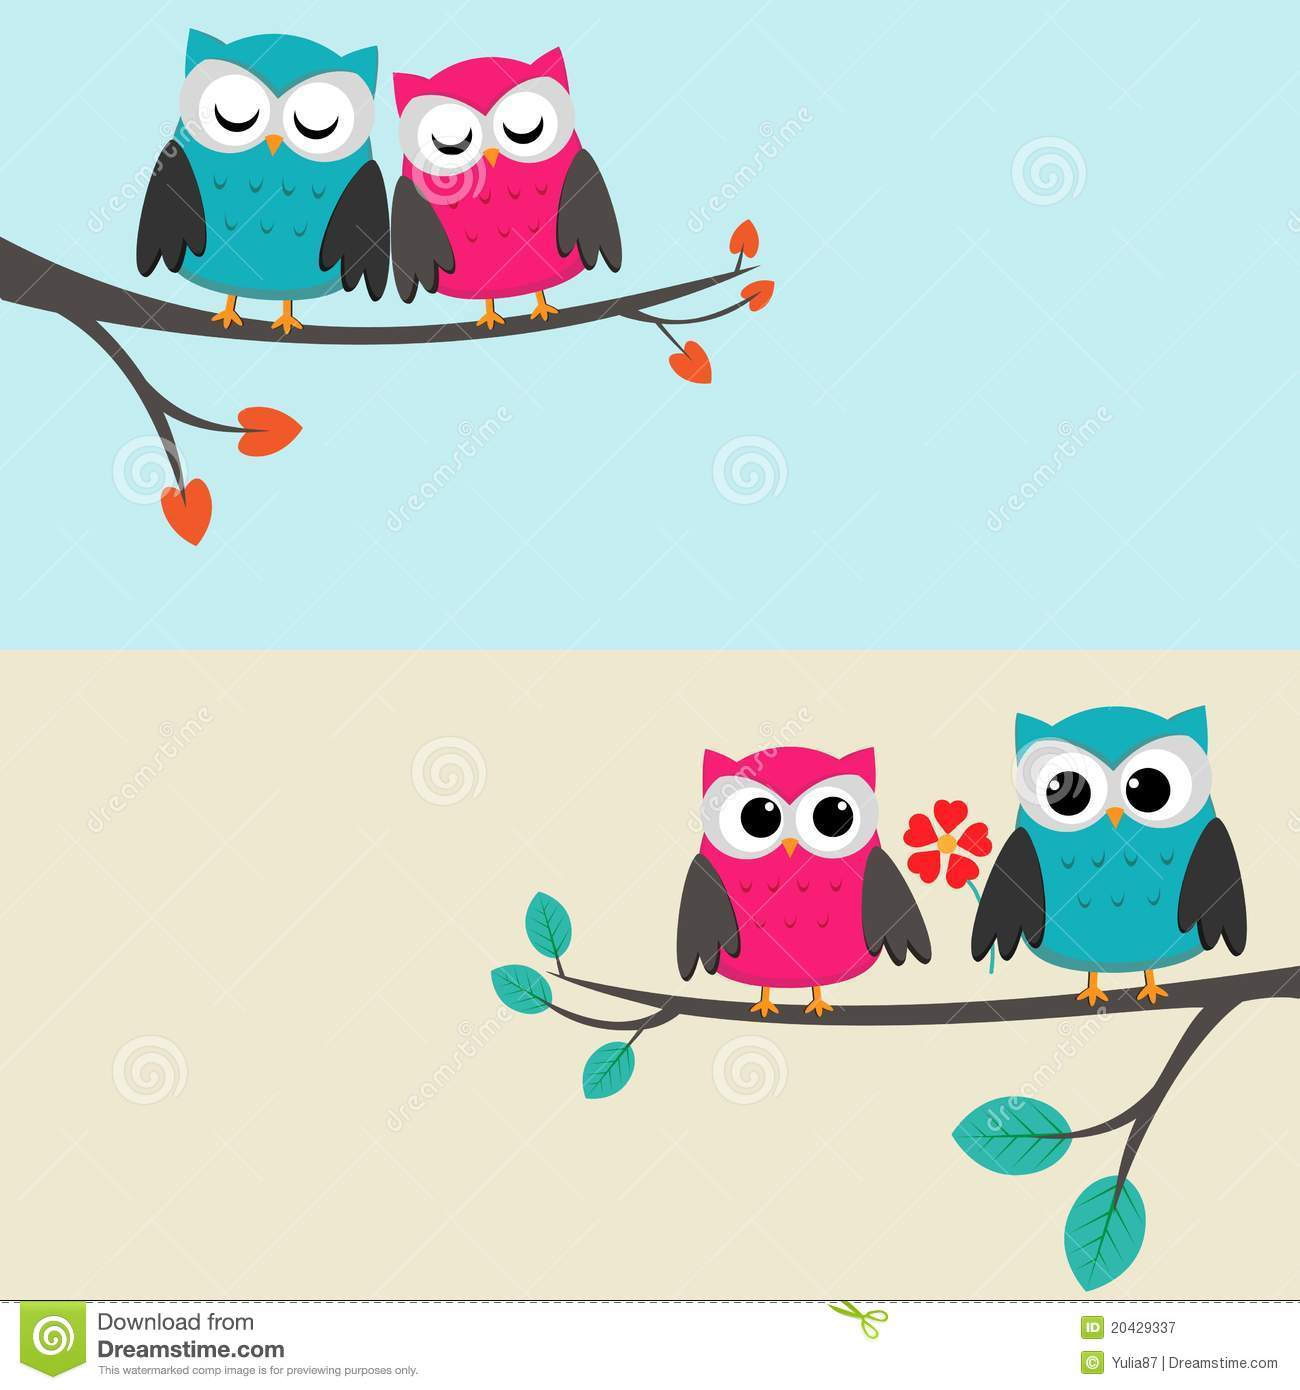 Owls_couples